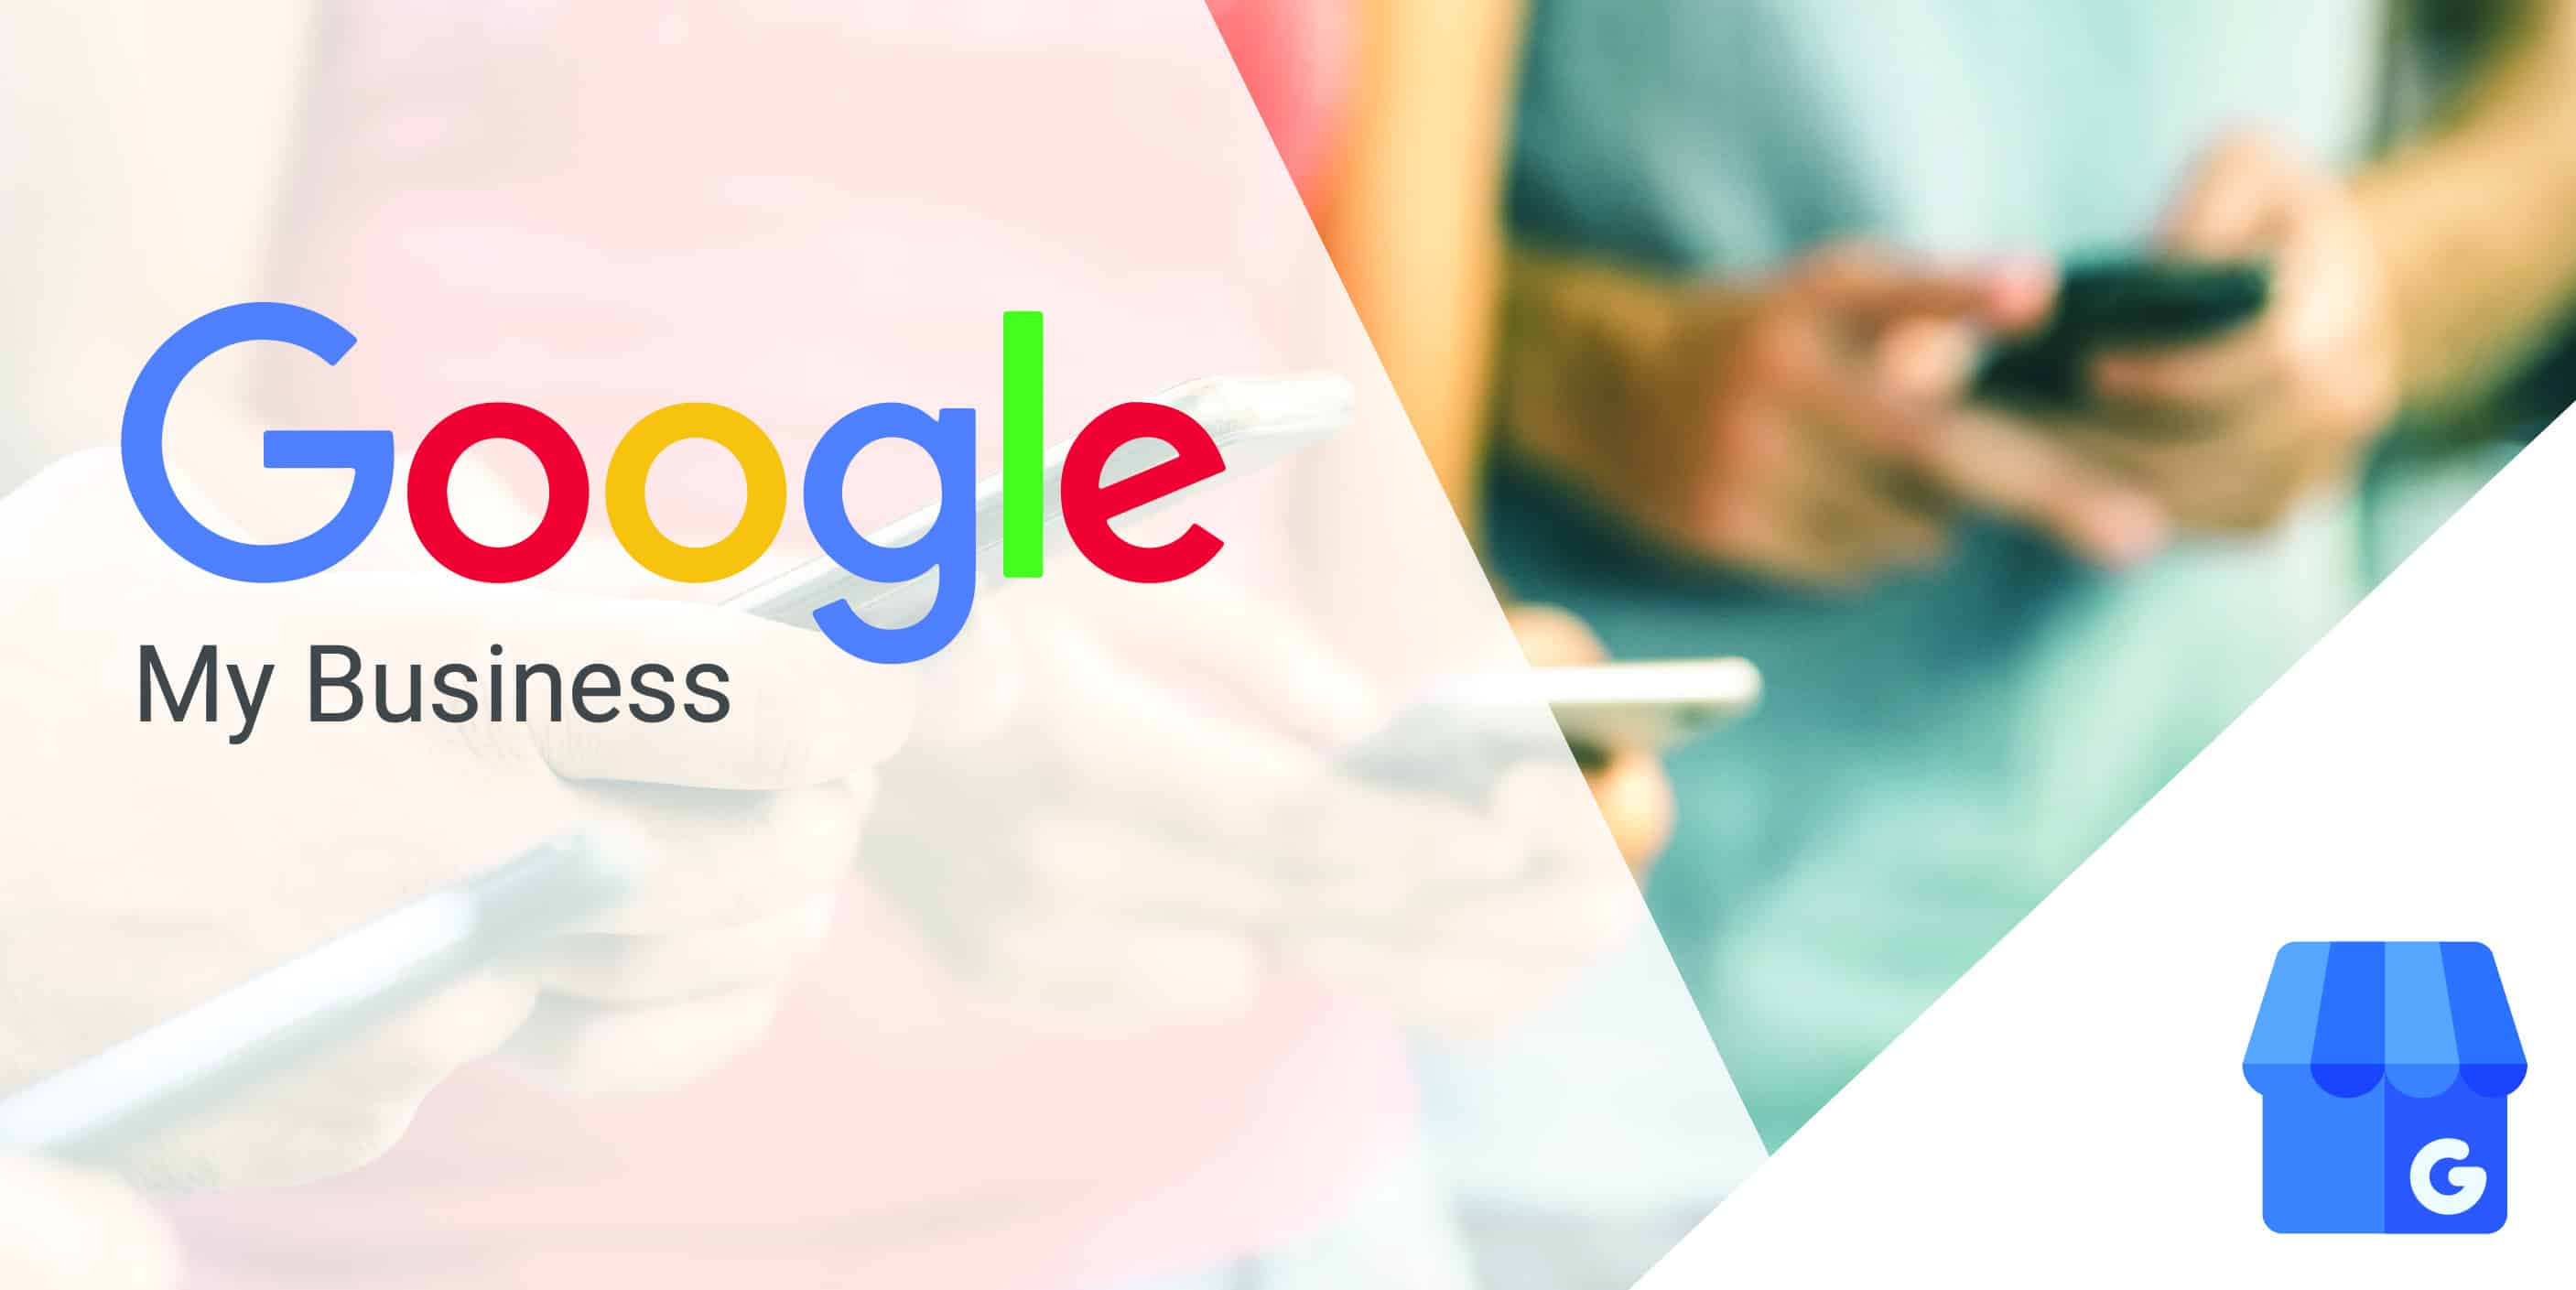 GoogleMyBusiness April 9746D5B2B09B1 - 9 New Features of Google My Business You Can Use To Generate Sales